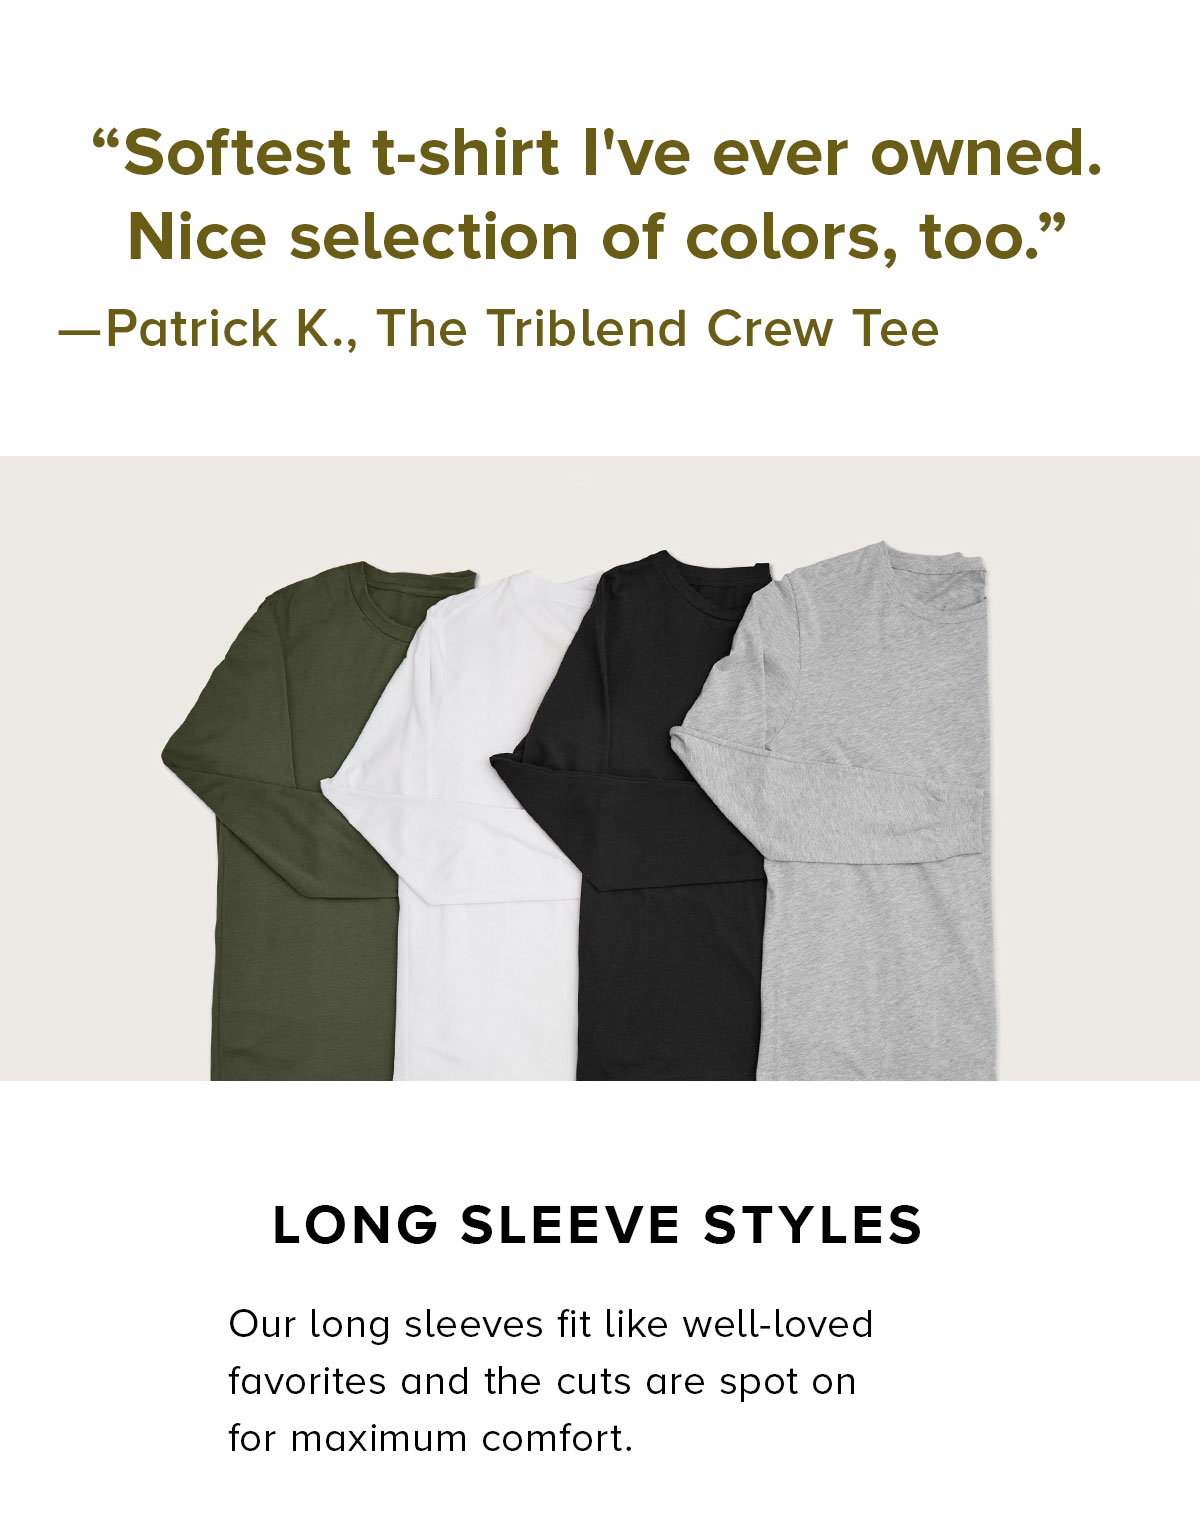 LONG SLEEVE STYLES Our long sleeves fit like well-loved favorites